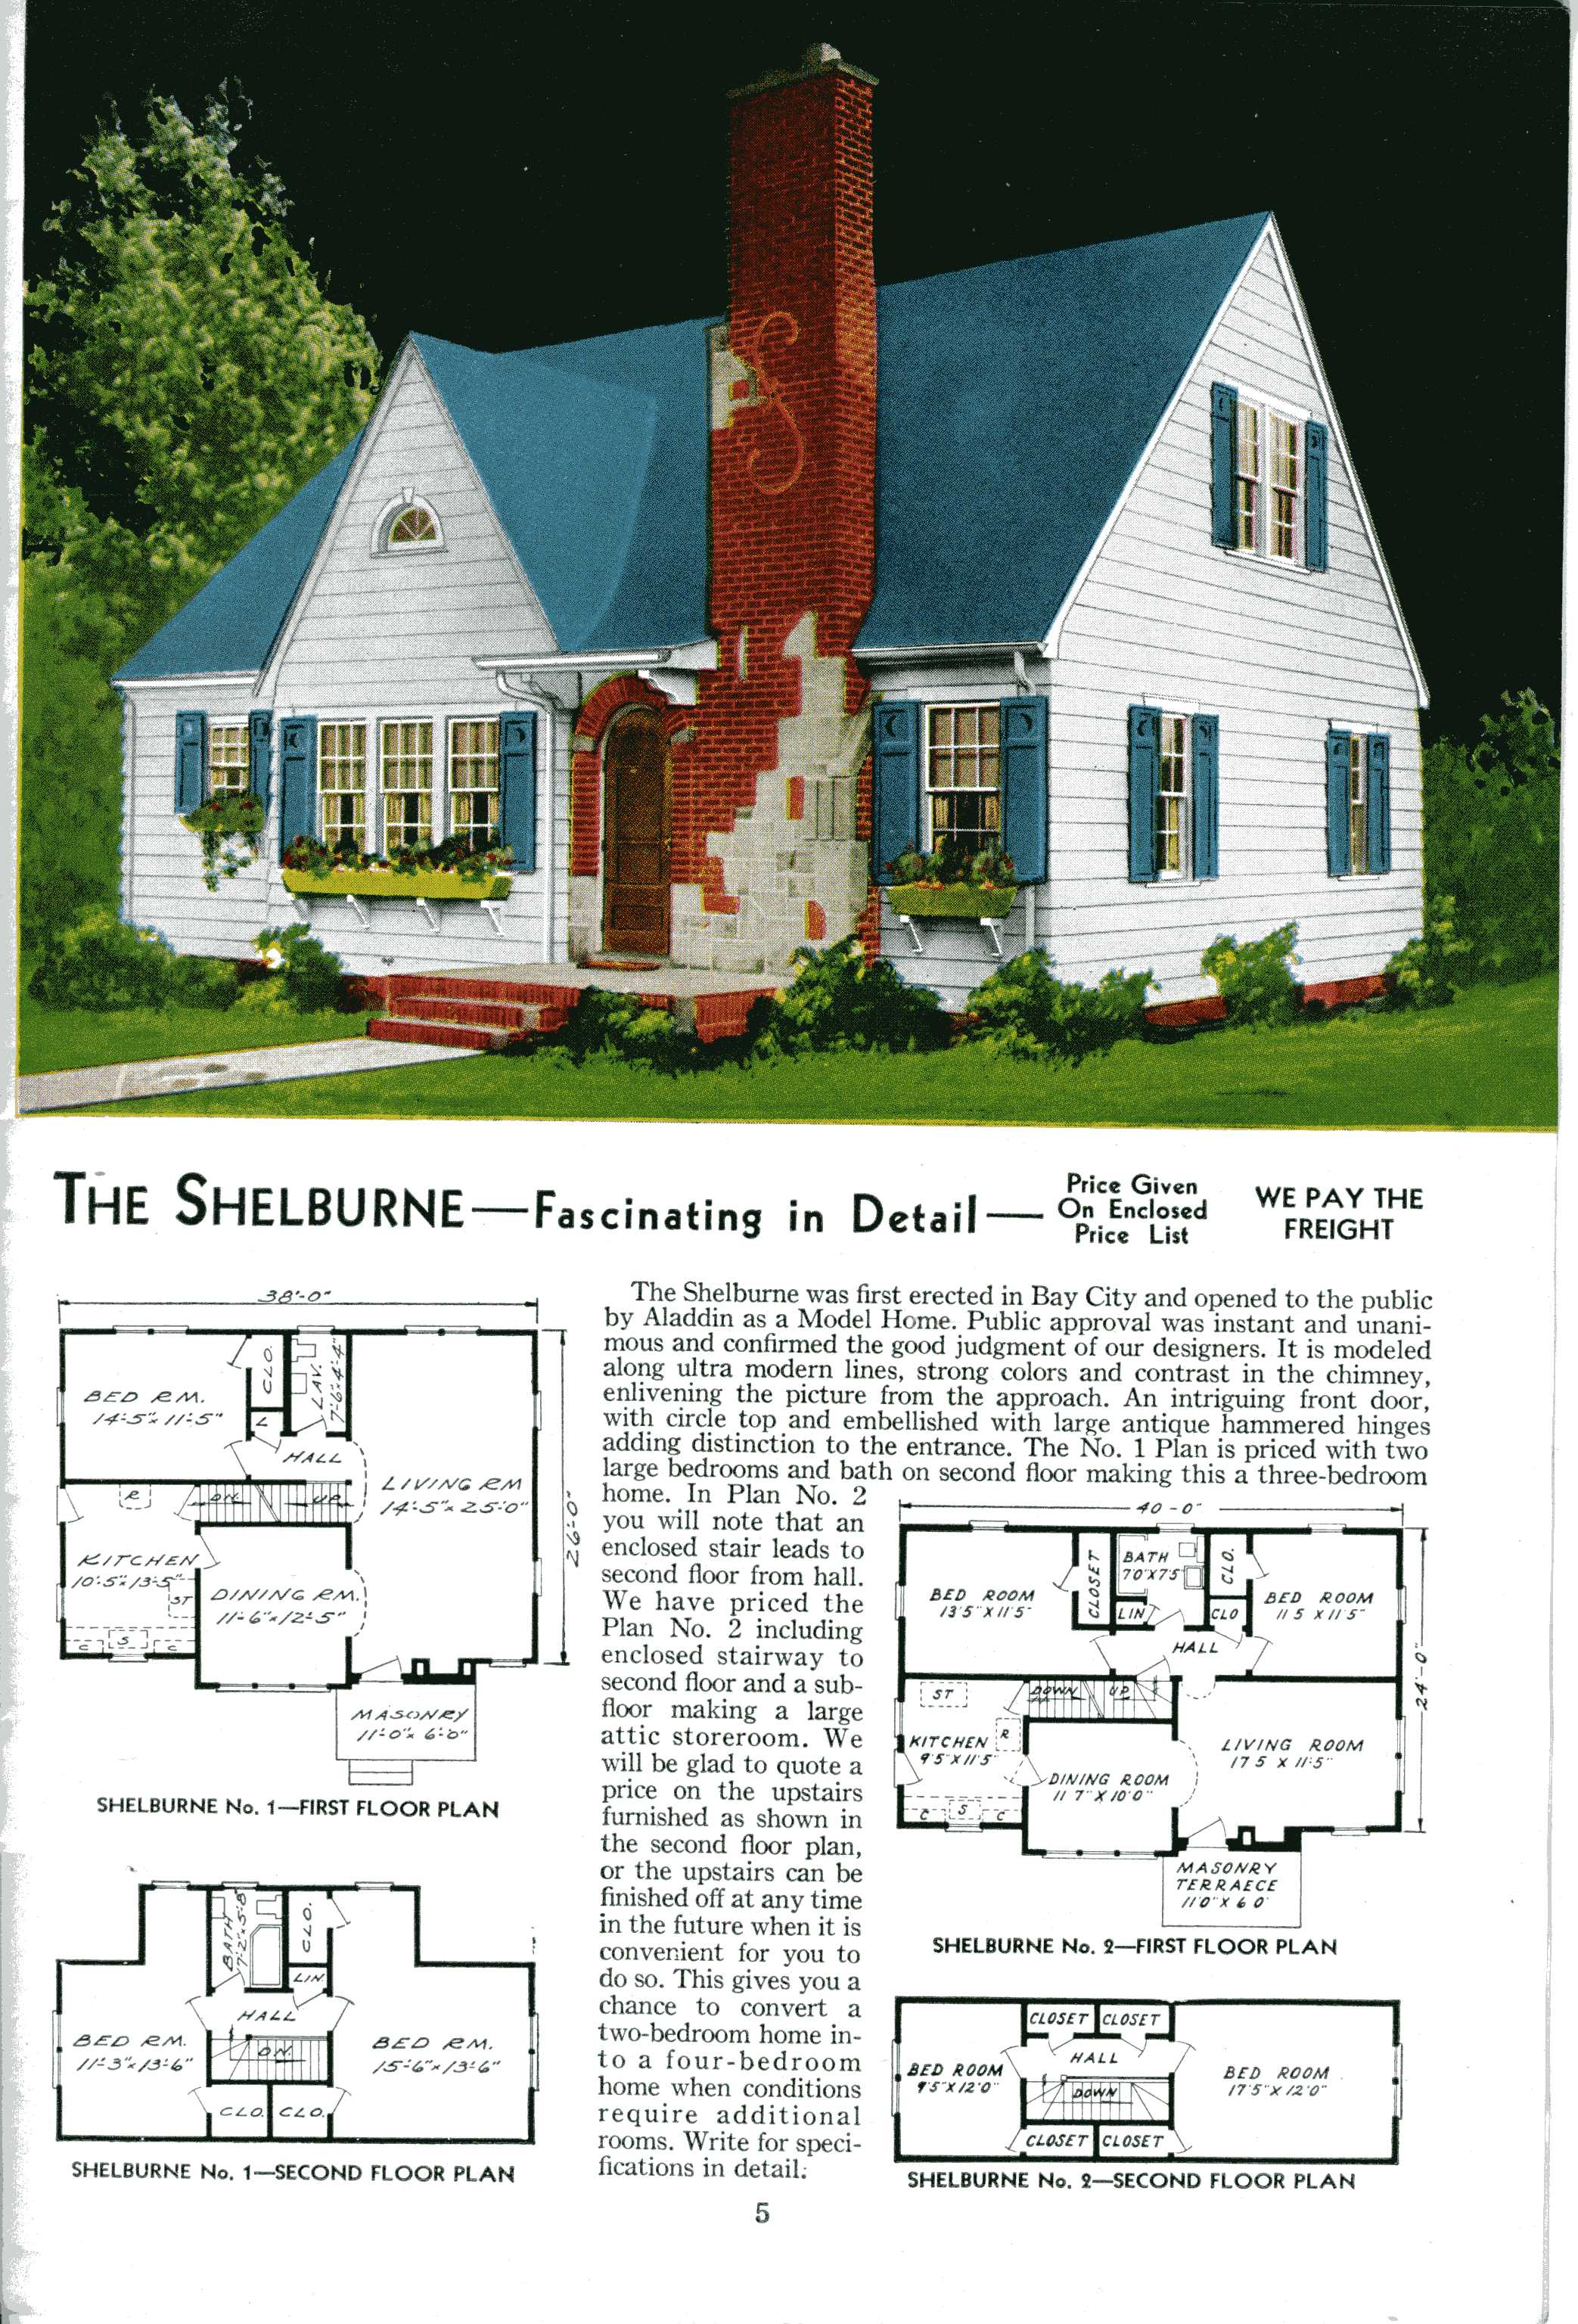 Sears catalog house plans find house plans Buy architectural plans